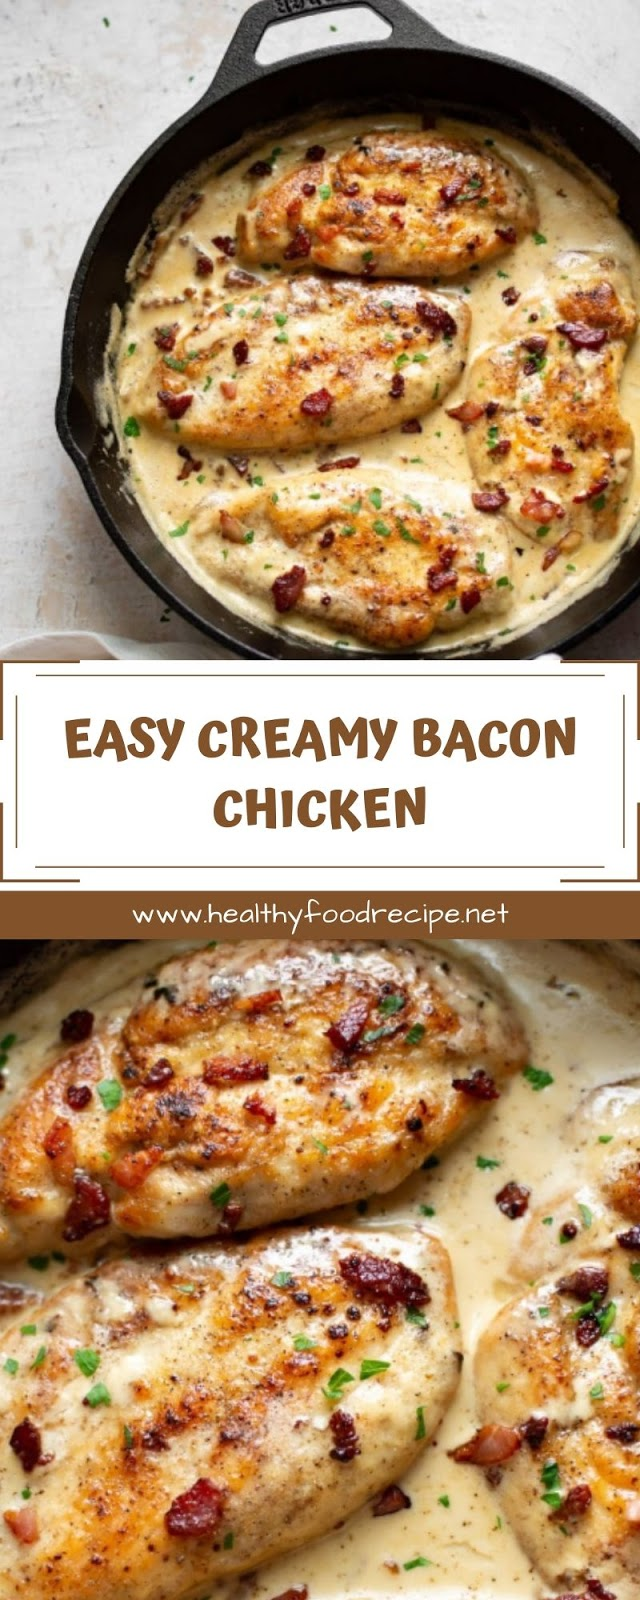 EASY CREAMY BACON CHICKEN